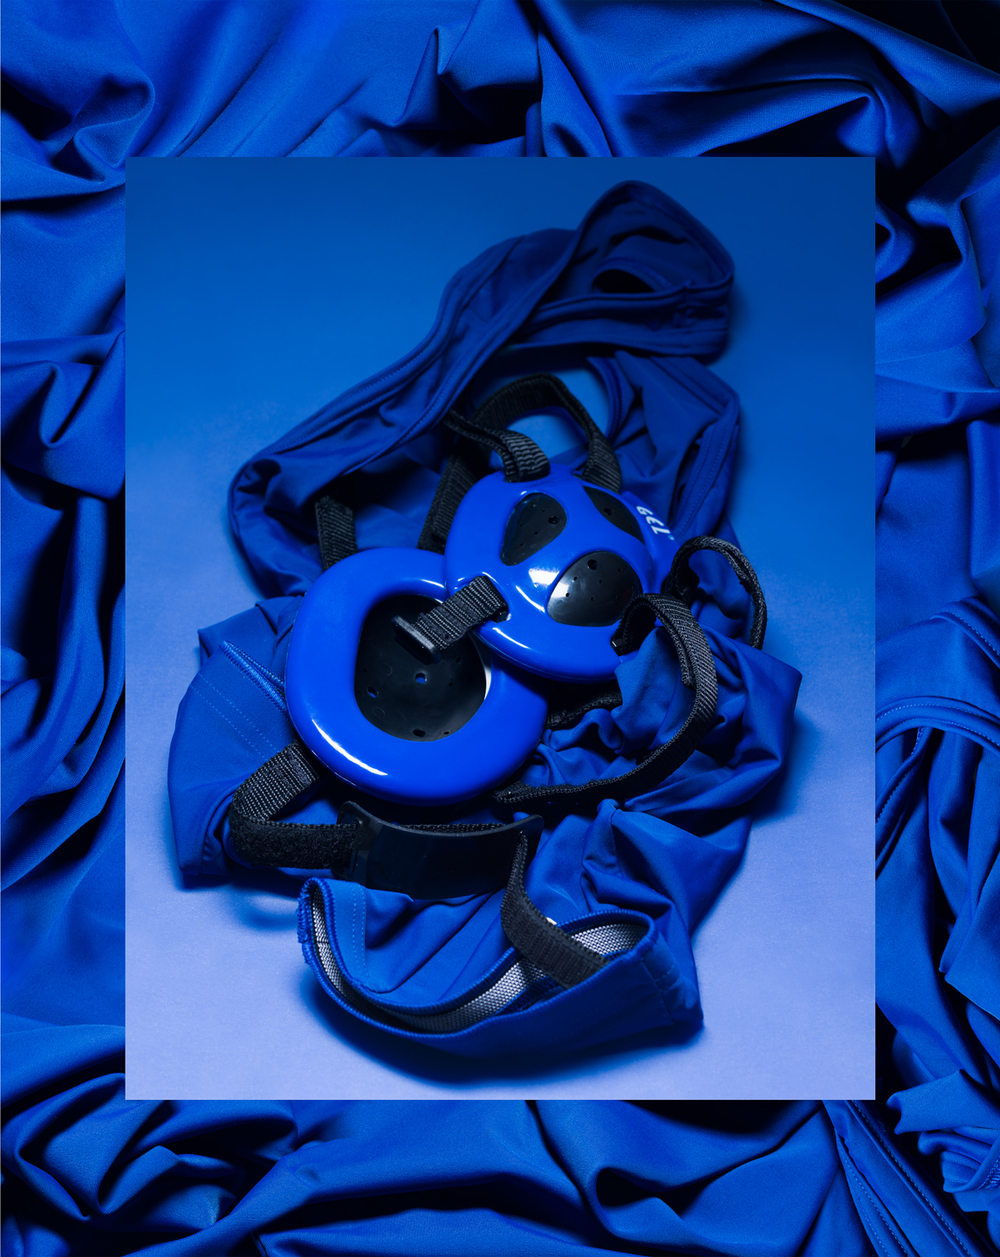 Blue Still Life with Singlet and Headgear